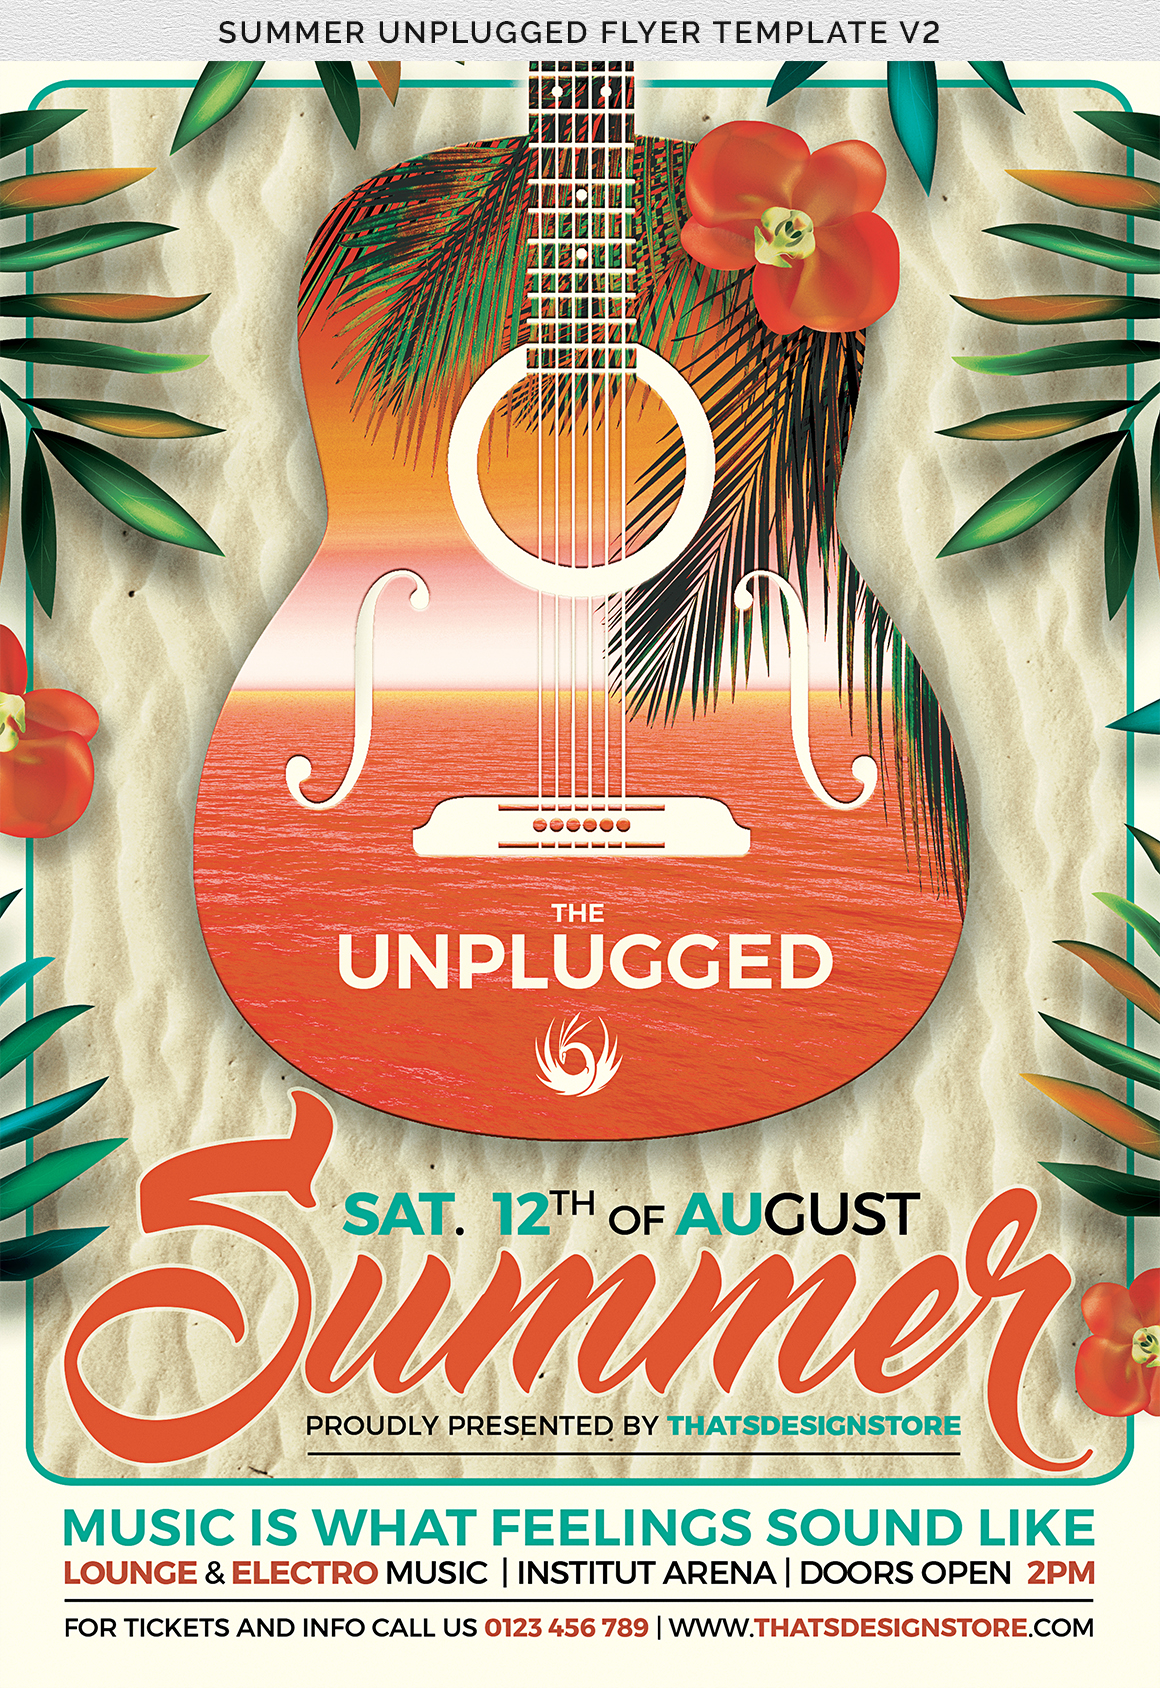 Summer Unplugged Flyer Template V2 example image 7